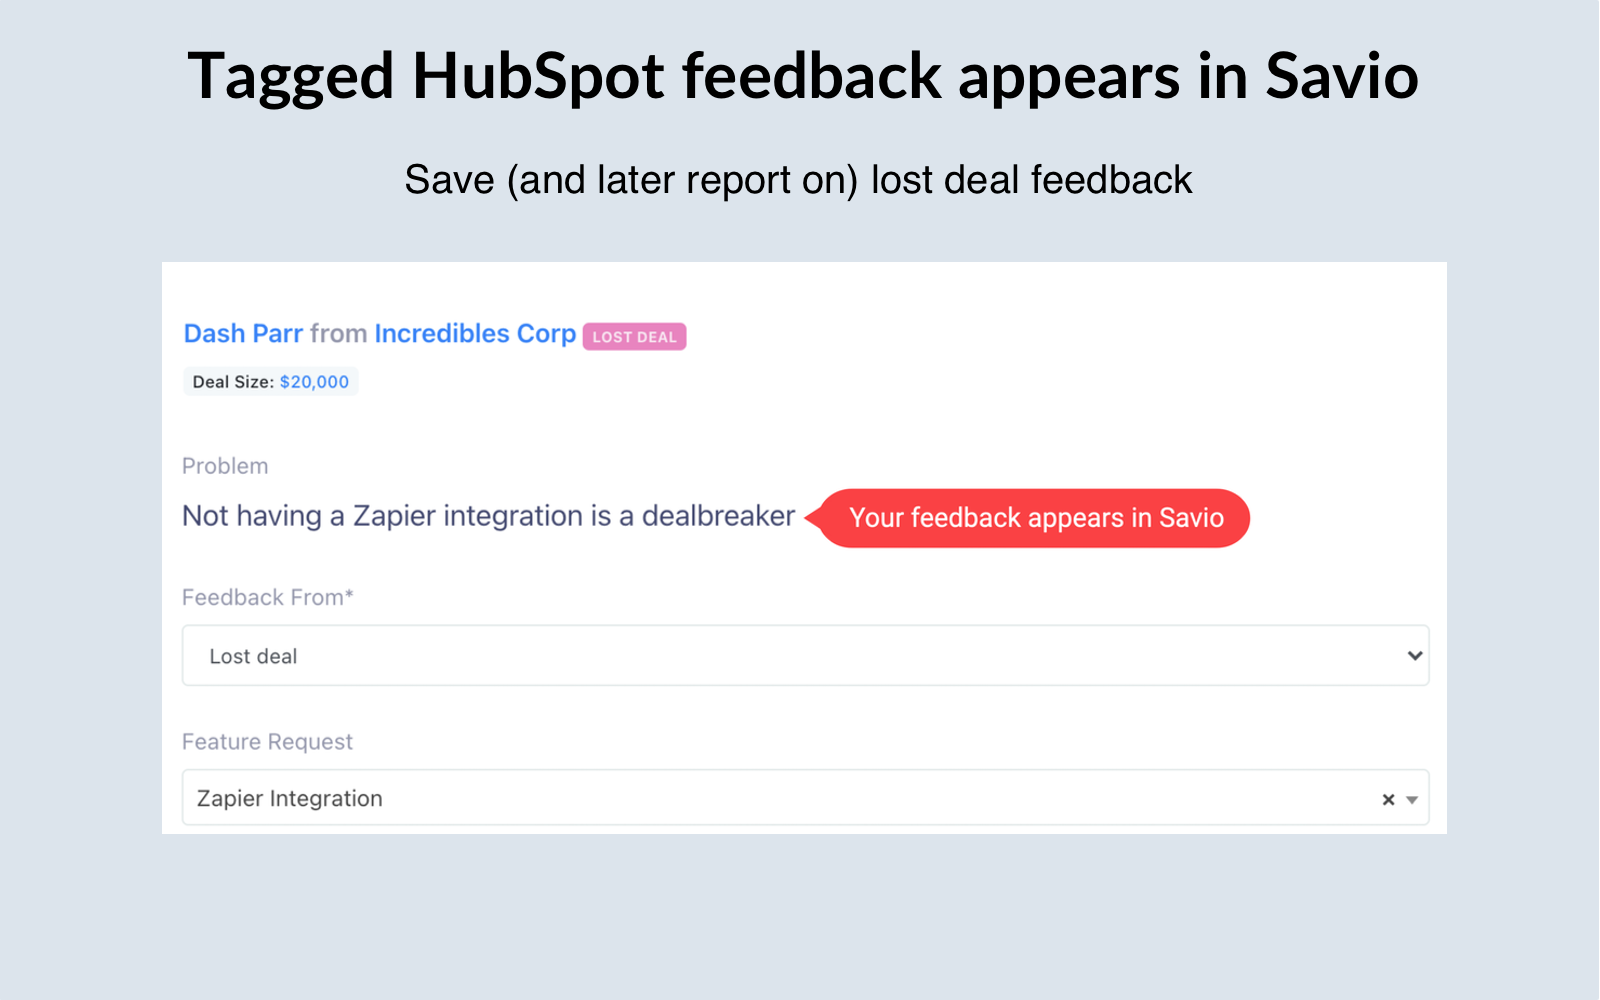 Track Feature requests in HubSpot